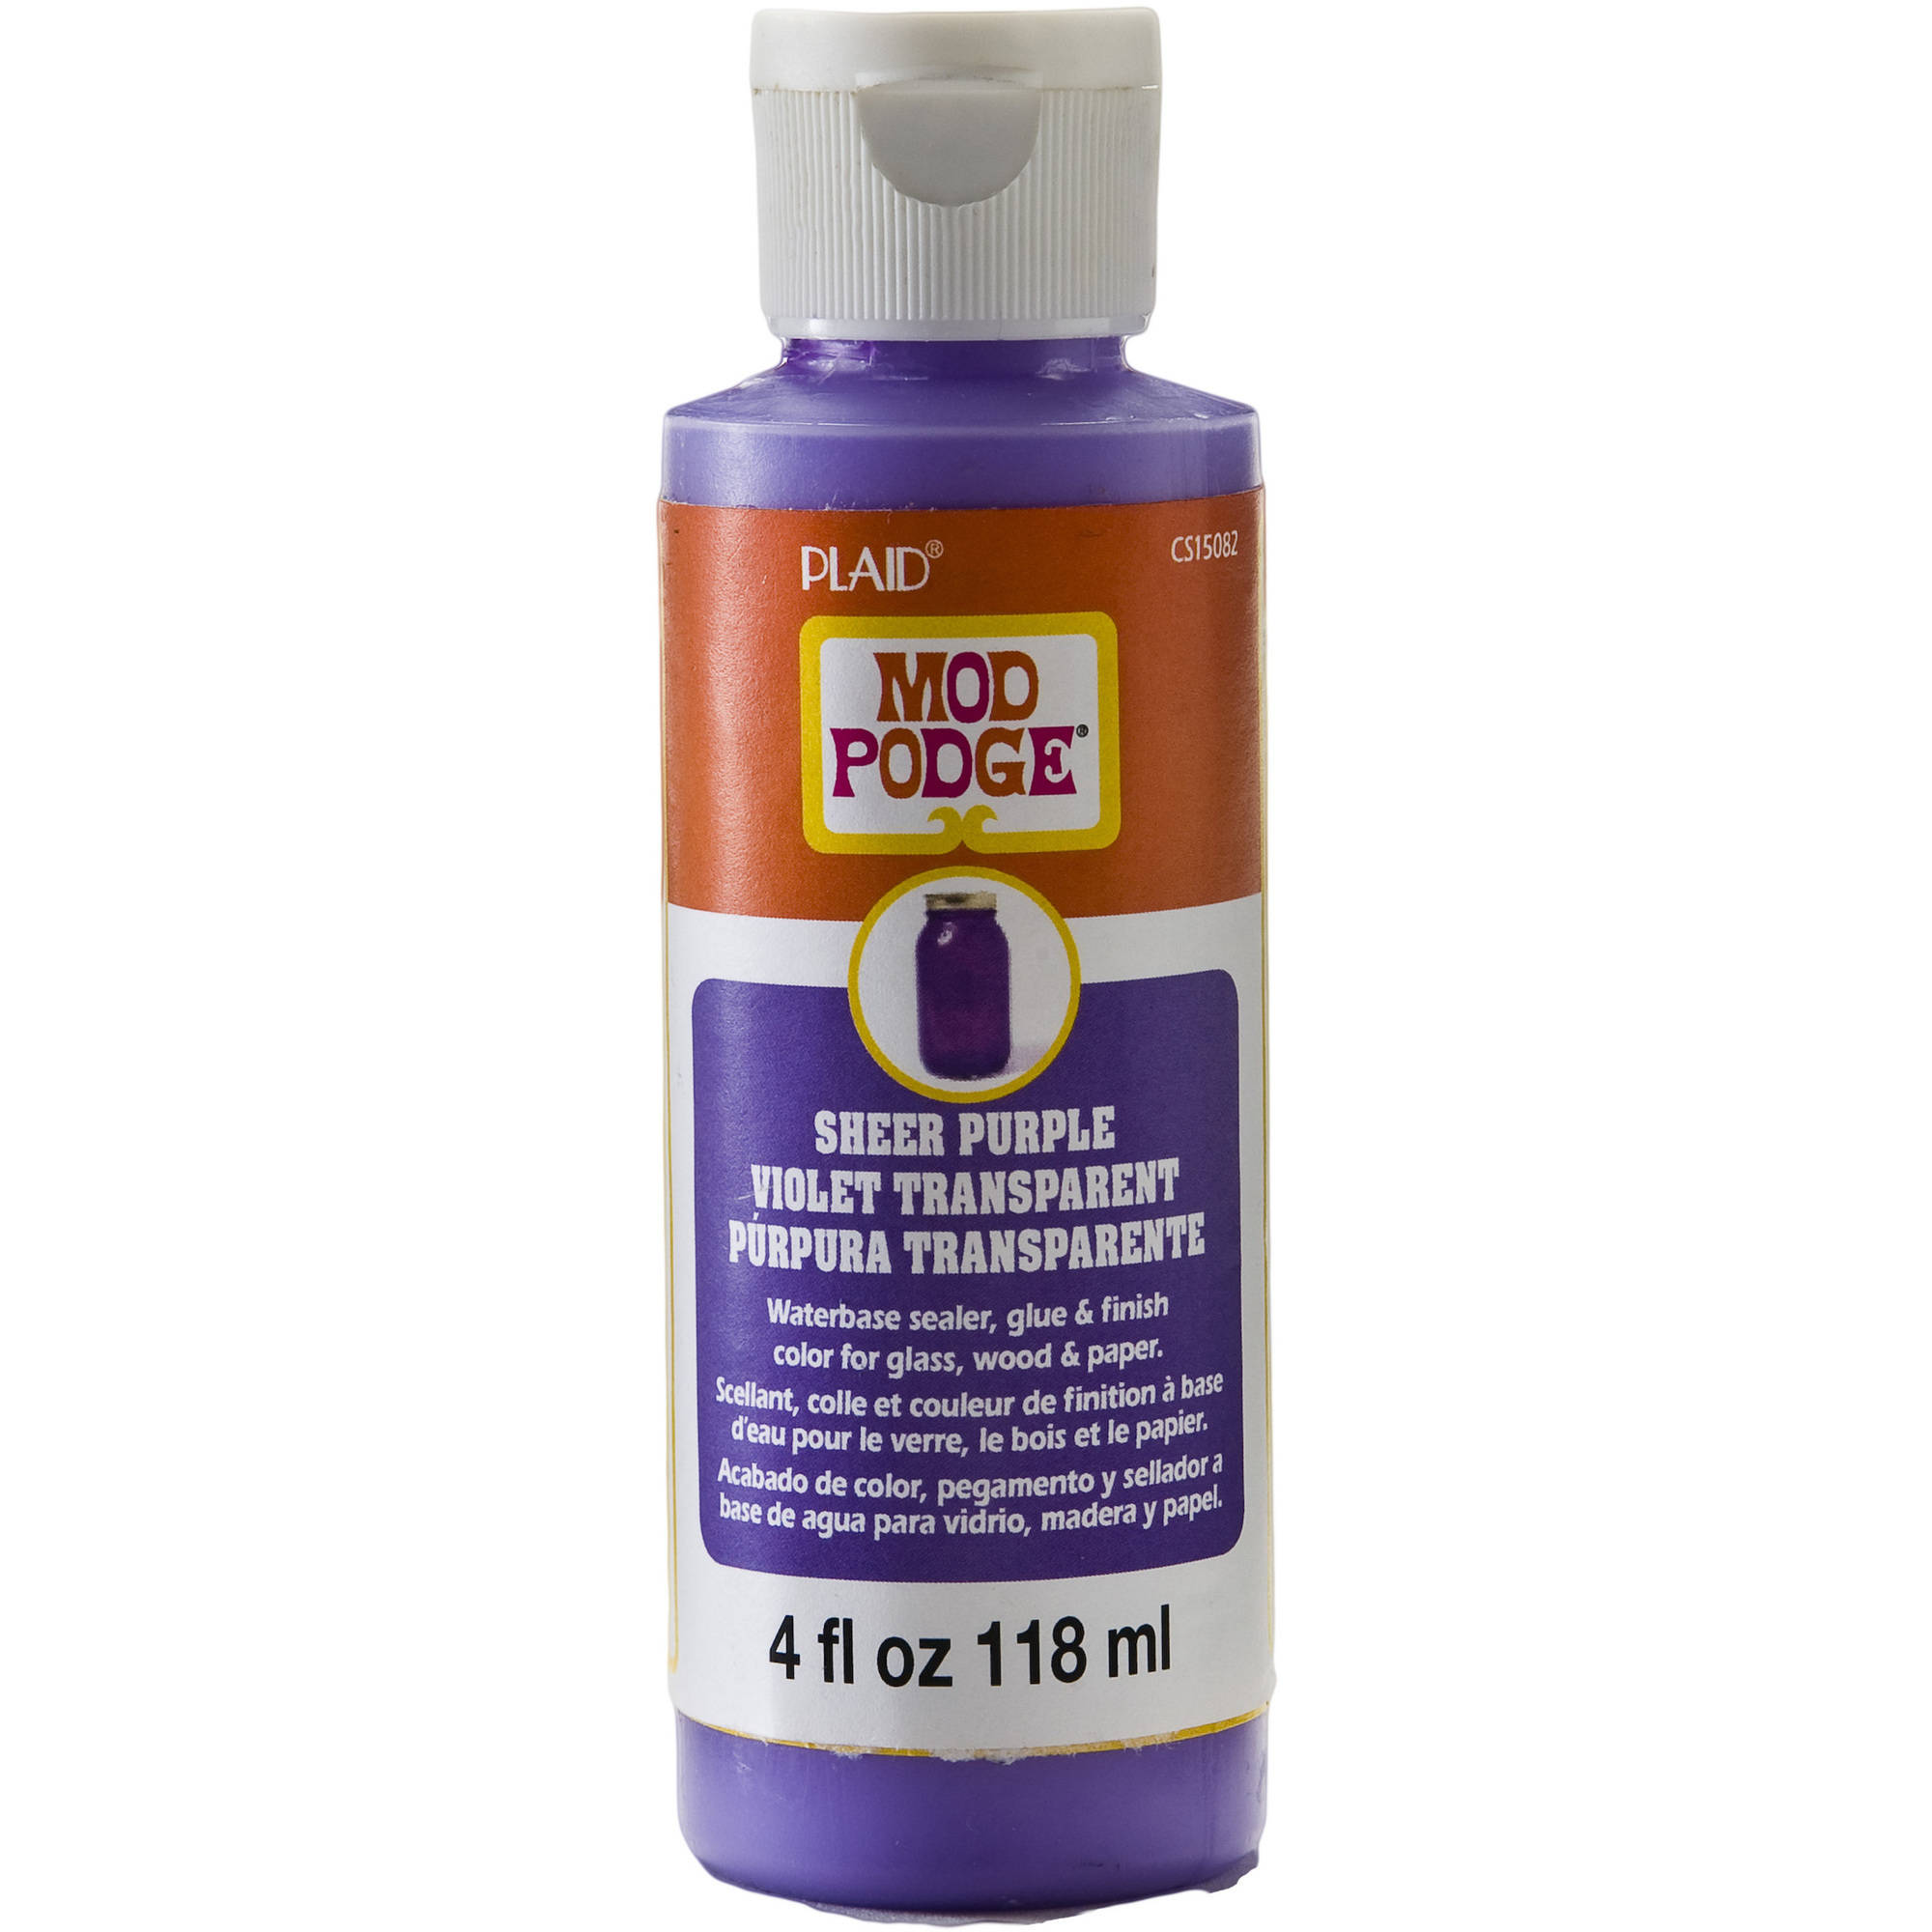 Mod Podge Sheer Color by Plaid, Purple, 4 oz.